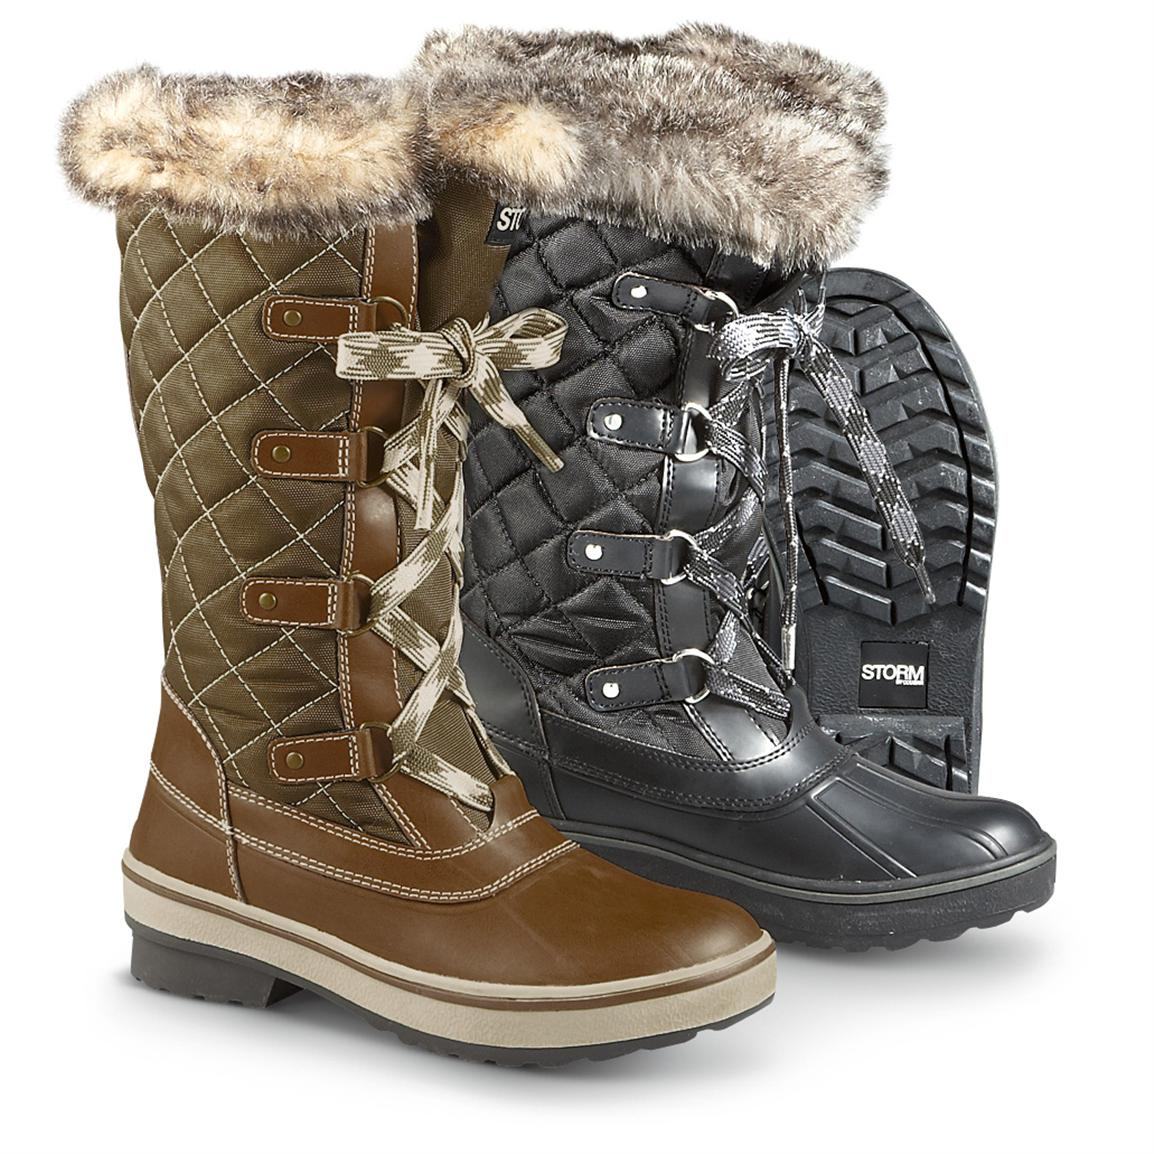 Winter Snow Boots For Women FOU02rFa